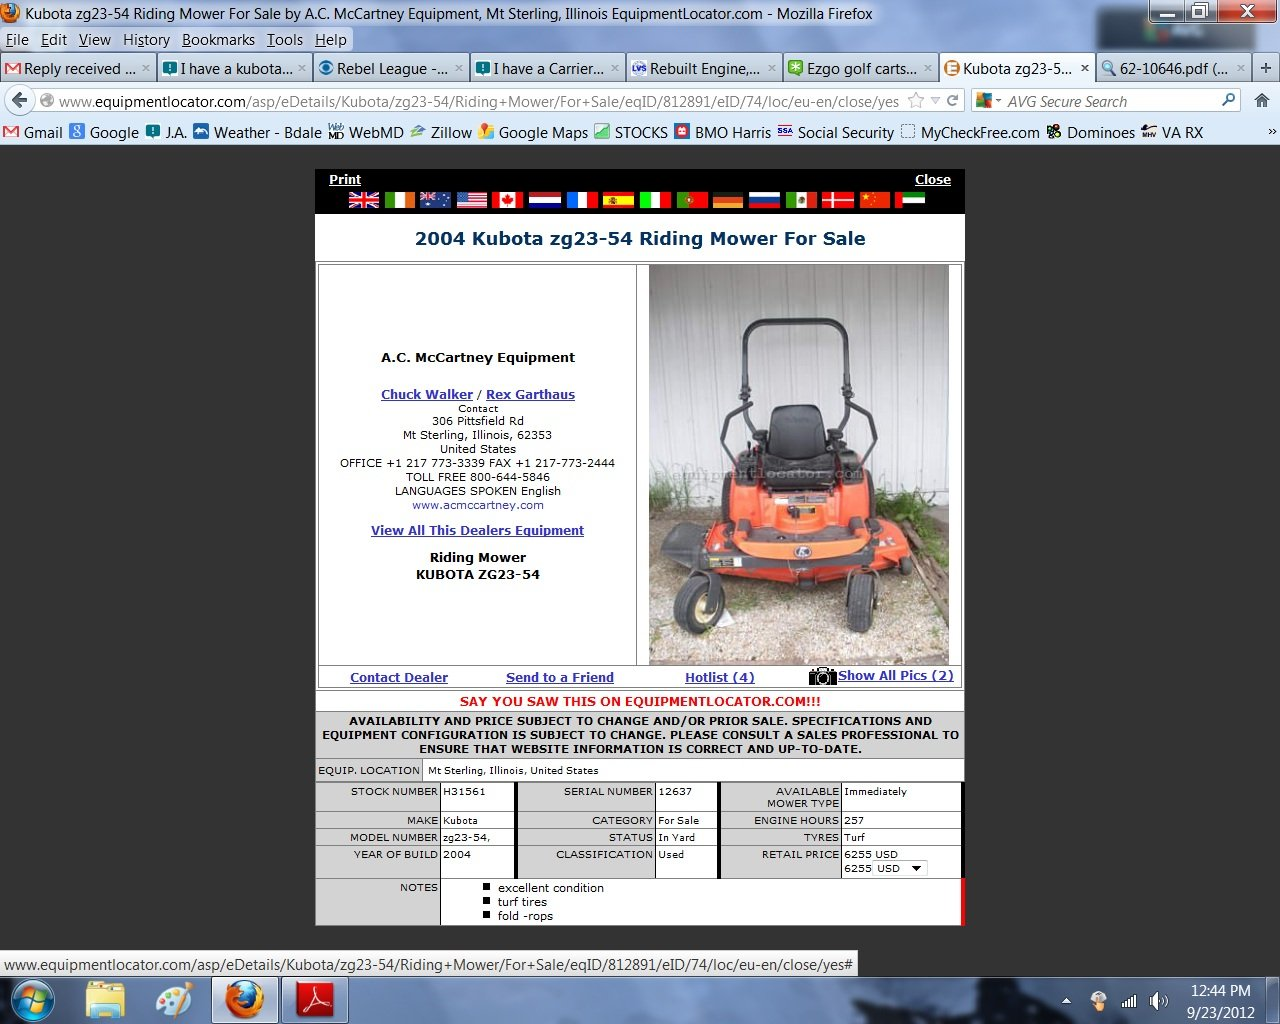 I have a kubota zero turn  I want to verify the date of manufacture